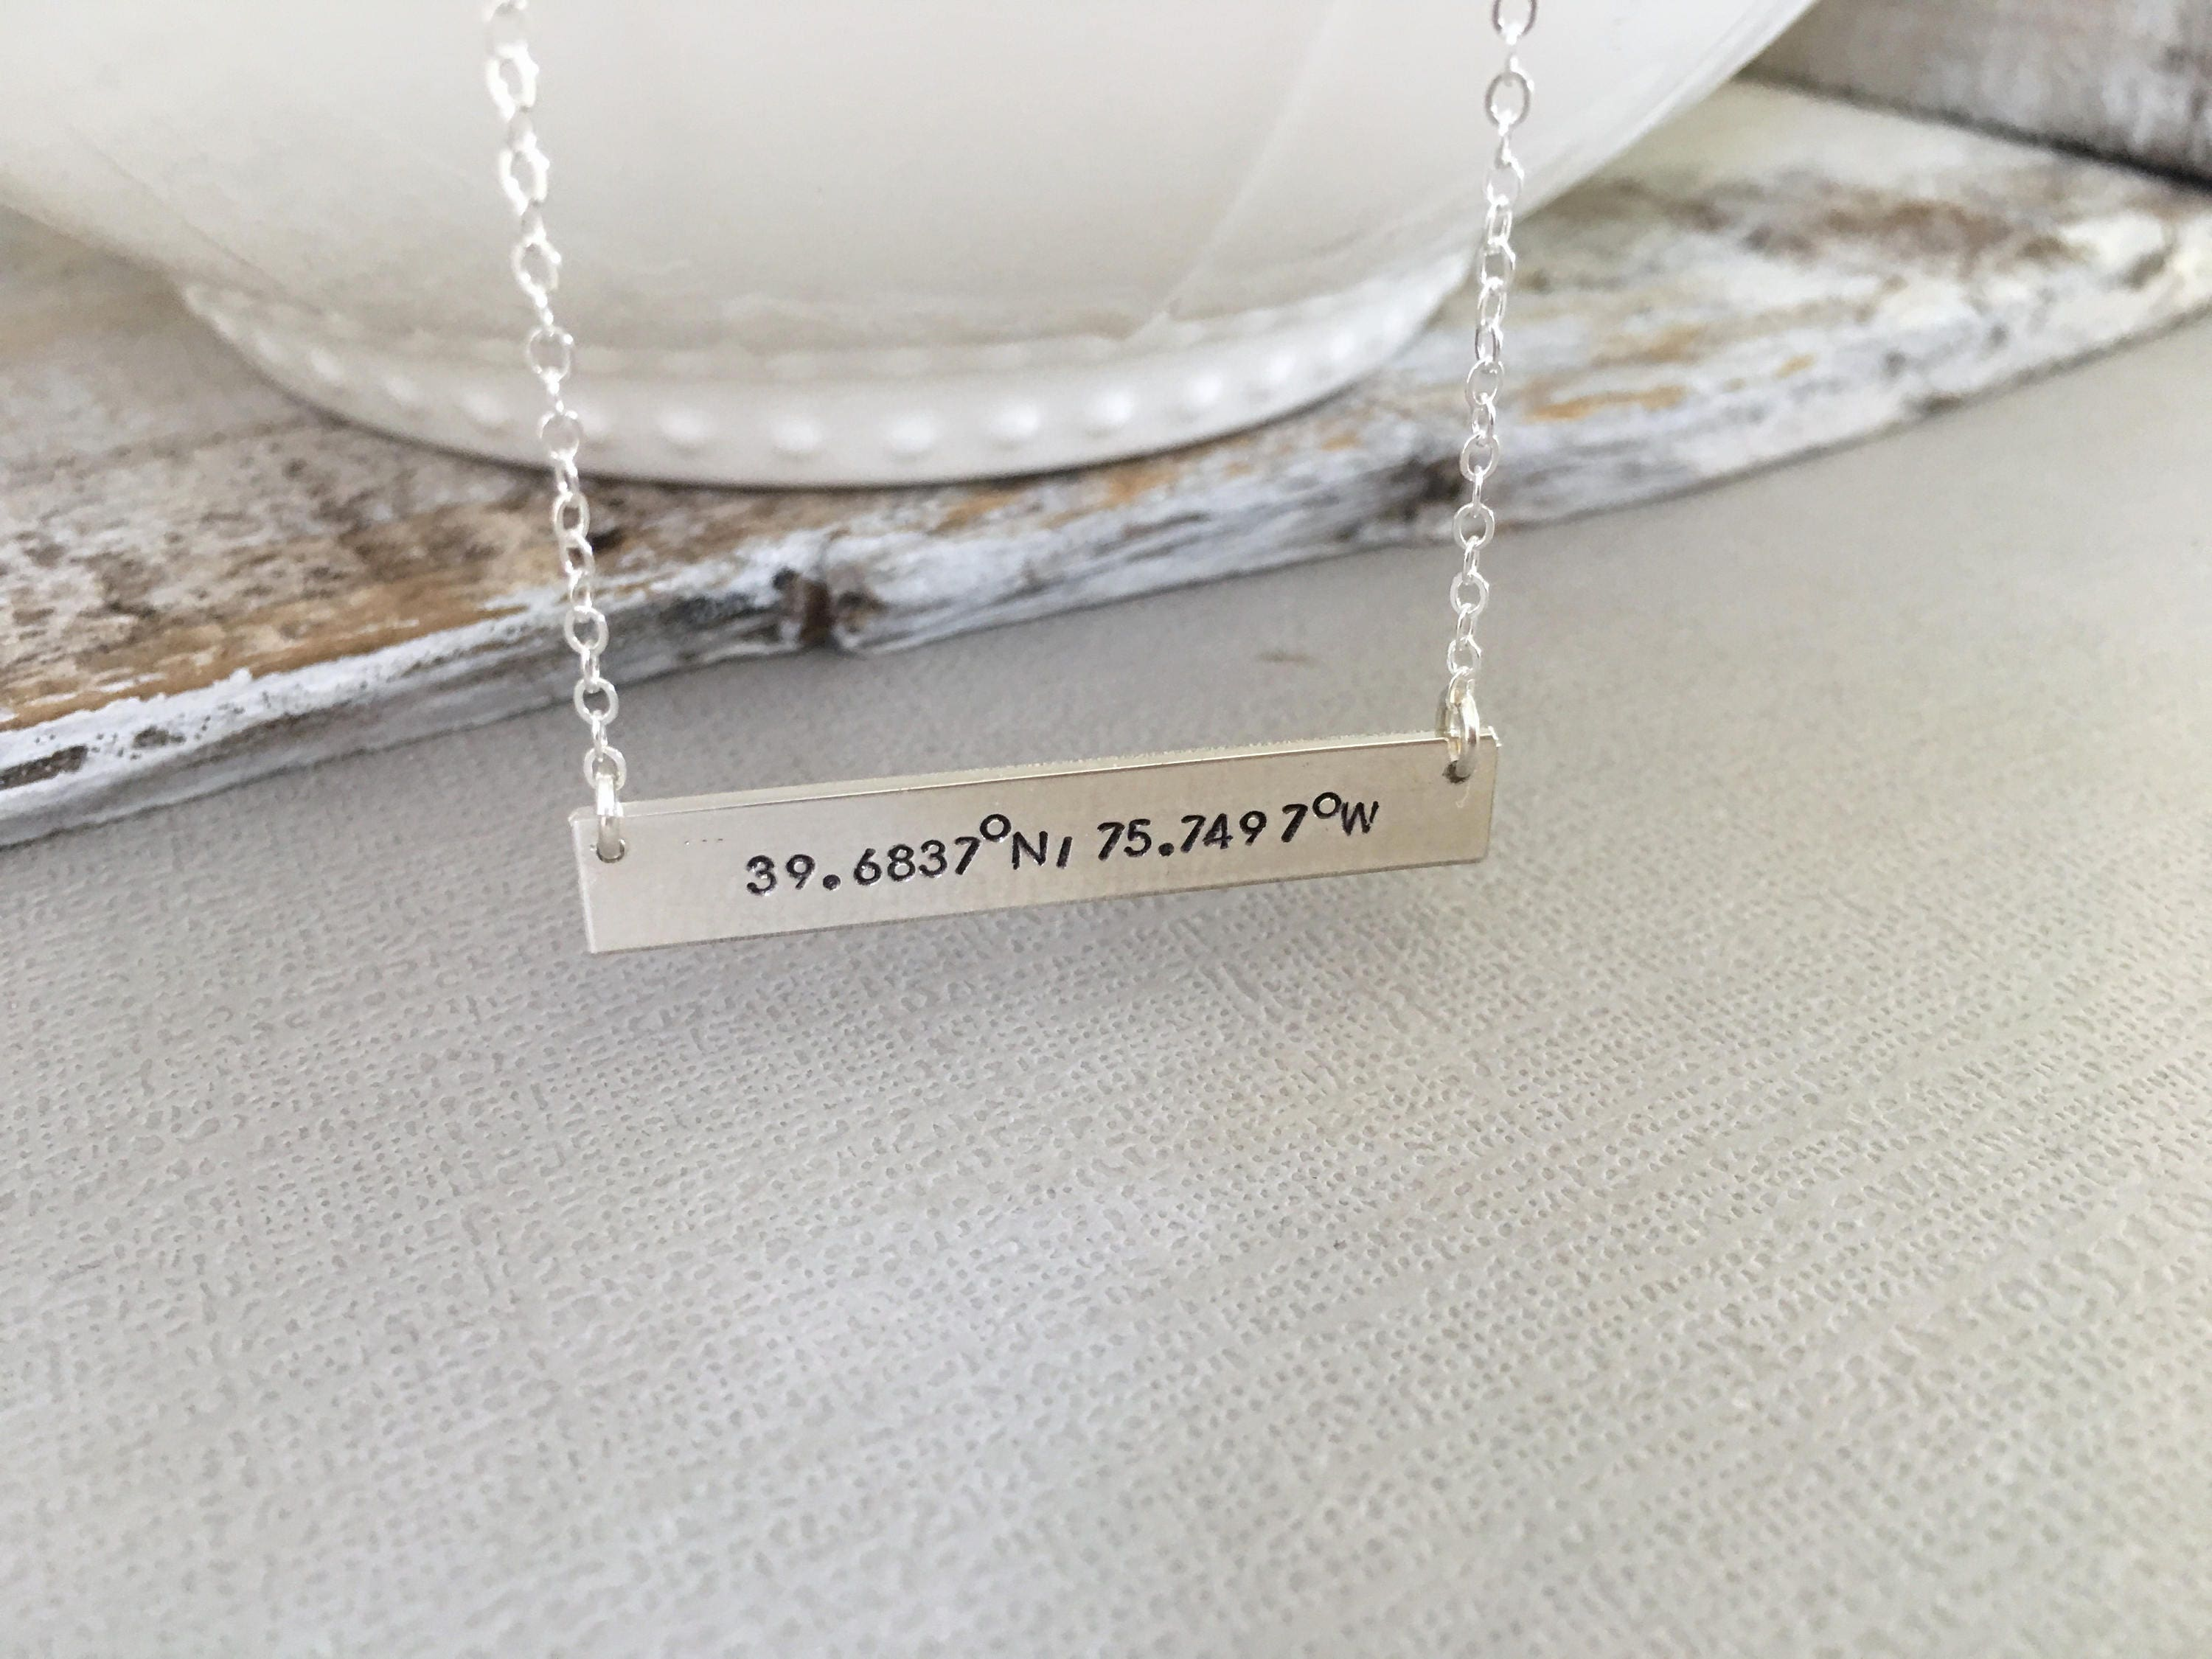 jewelry her custom personalized birth mom necklace girl listing fullxfull s gift for coordinate minimalist shower charm boy il baby